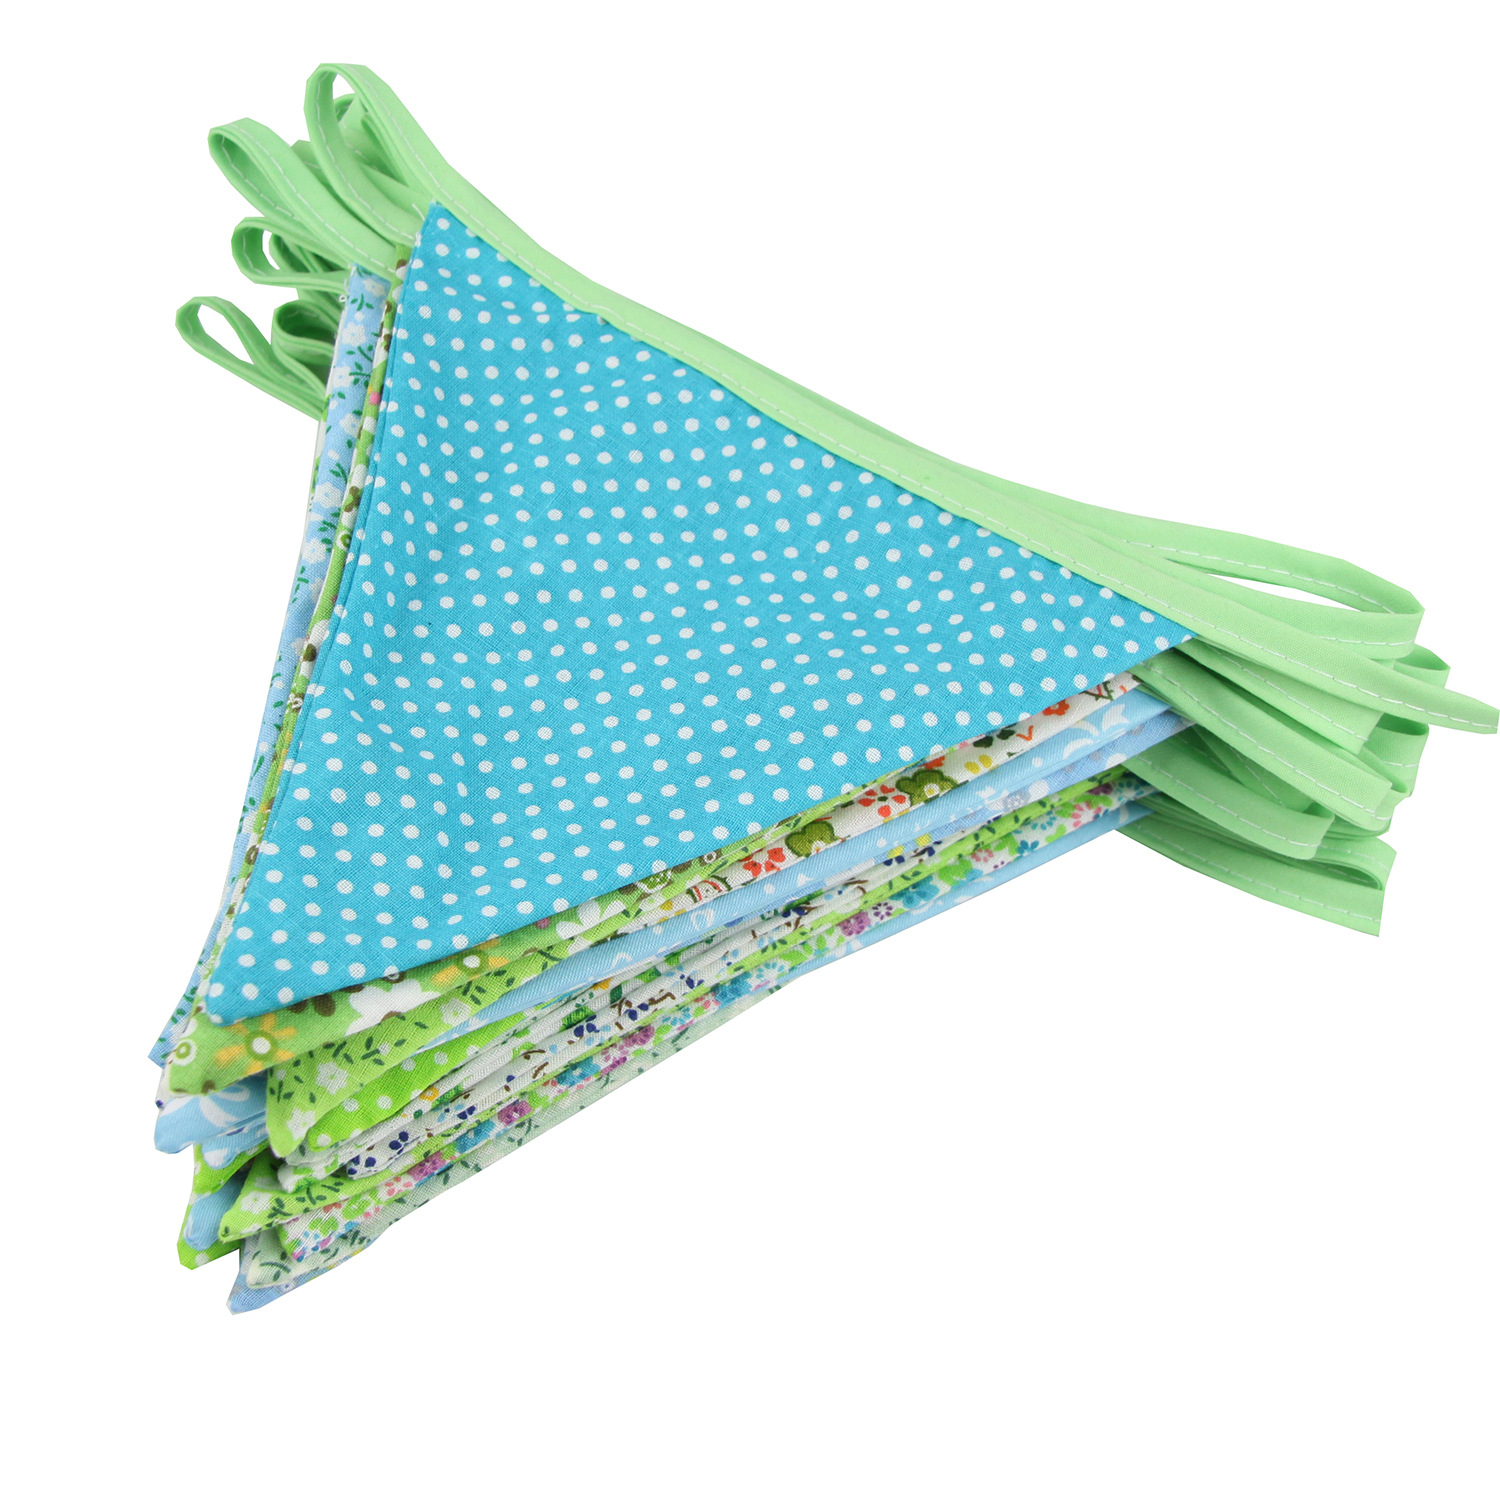 Gala-zone 10M 36 Flags Green Cotton Fabric Bunting Banner Pennant Tent Flag Hanging Banner For Kids Home Bedroom Birthday Decor